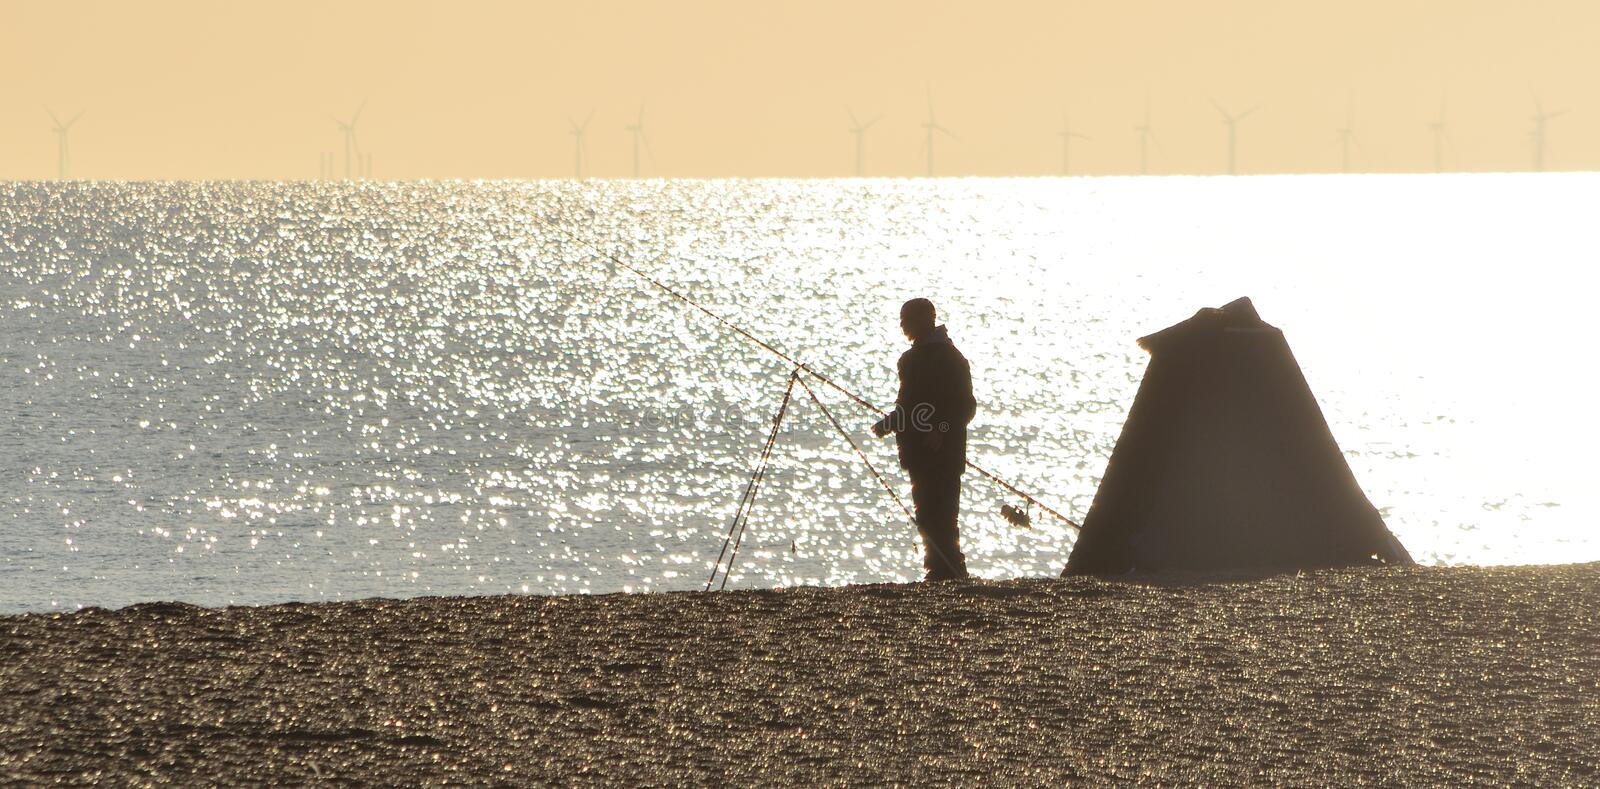 Fisherman Sea Fishing from the Beach royalty free stock photography